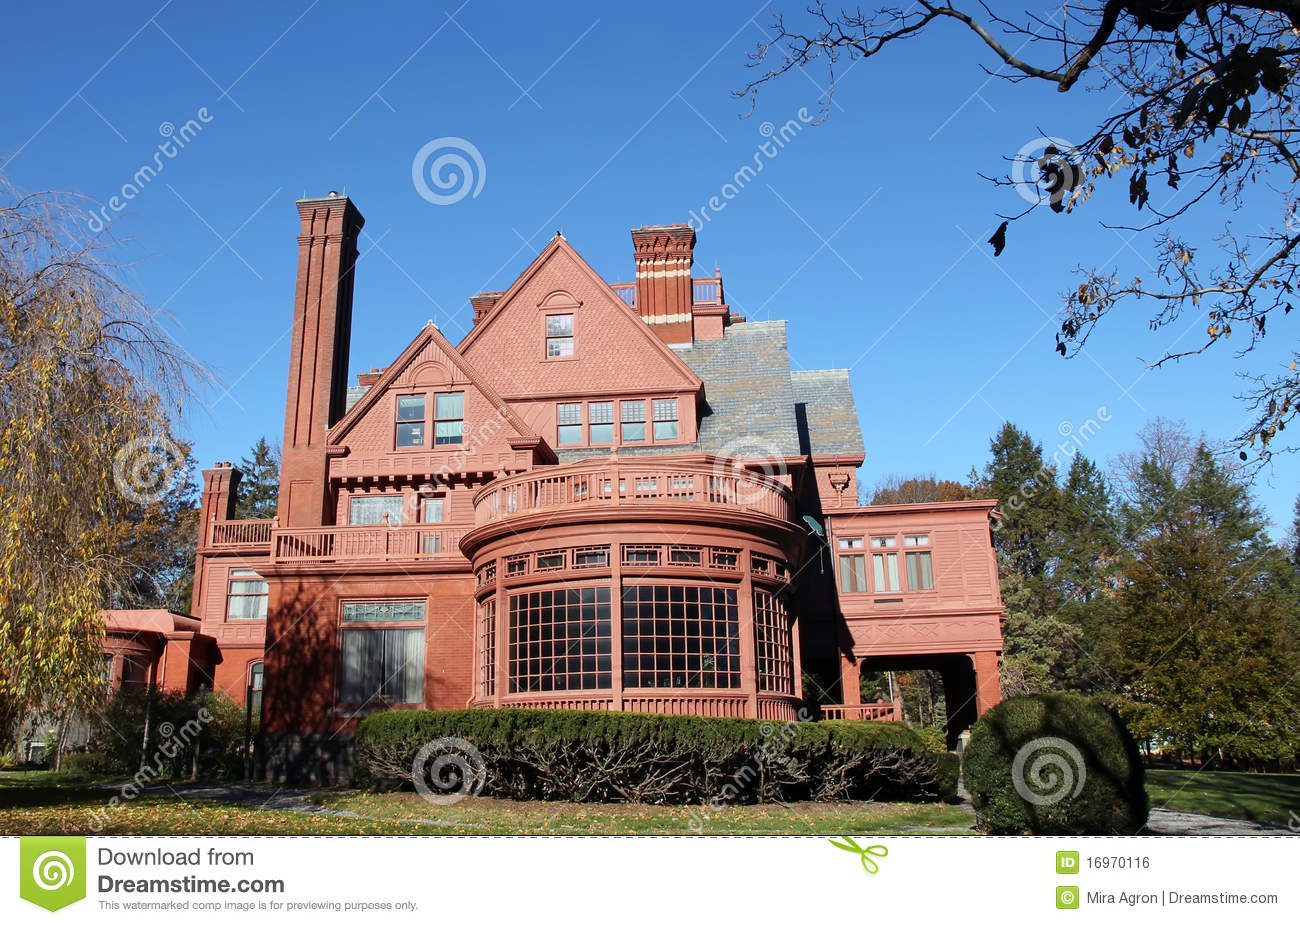 Thomas Edison estate located in Llewellyn Park in West Orange,NJ.The ...